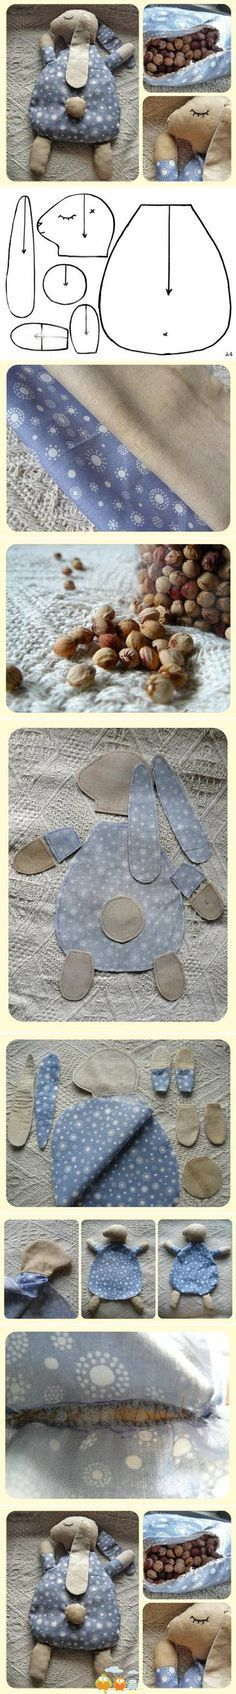 18 ideas for baby diy sewing toy Sewing Toys, Baby Sewing, Sewing Crafts, Sewing Projects, Diy Crafts, Diy Projects, Fabric Toys, Fabric Crafts, Diy Toys